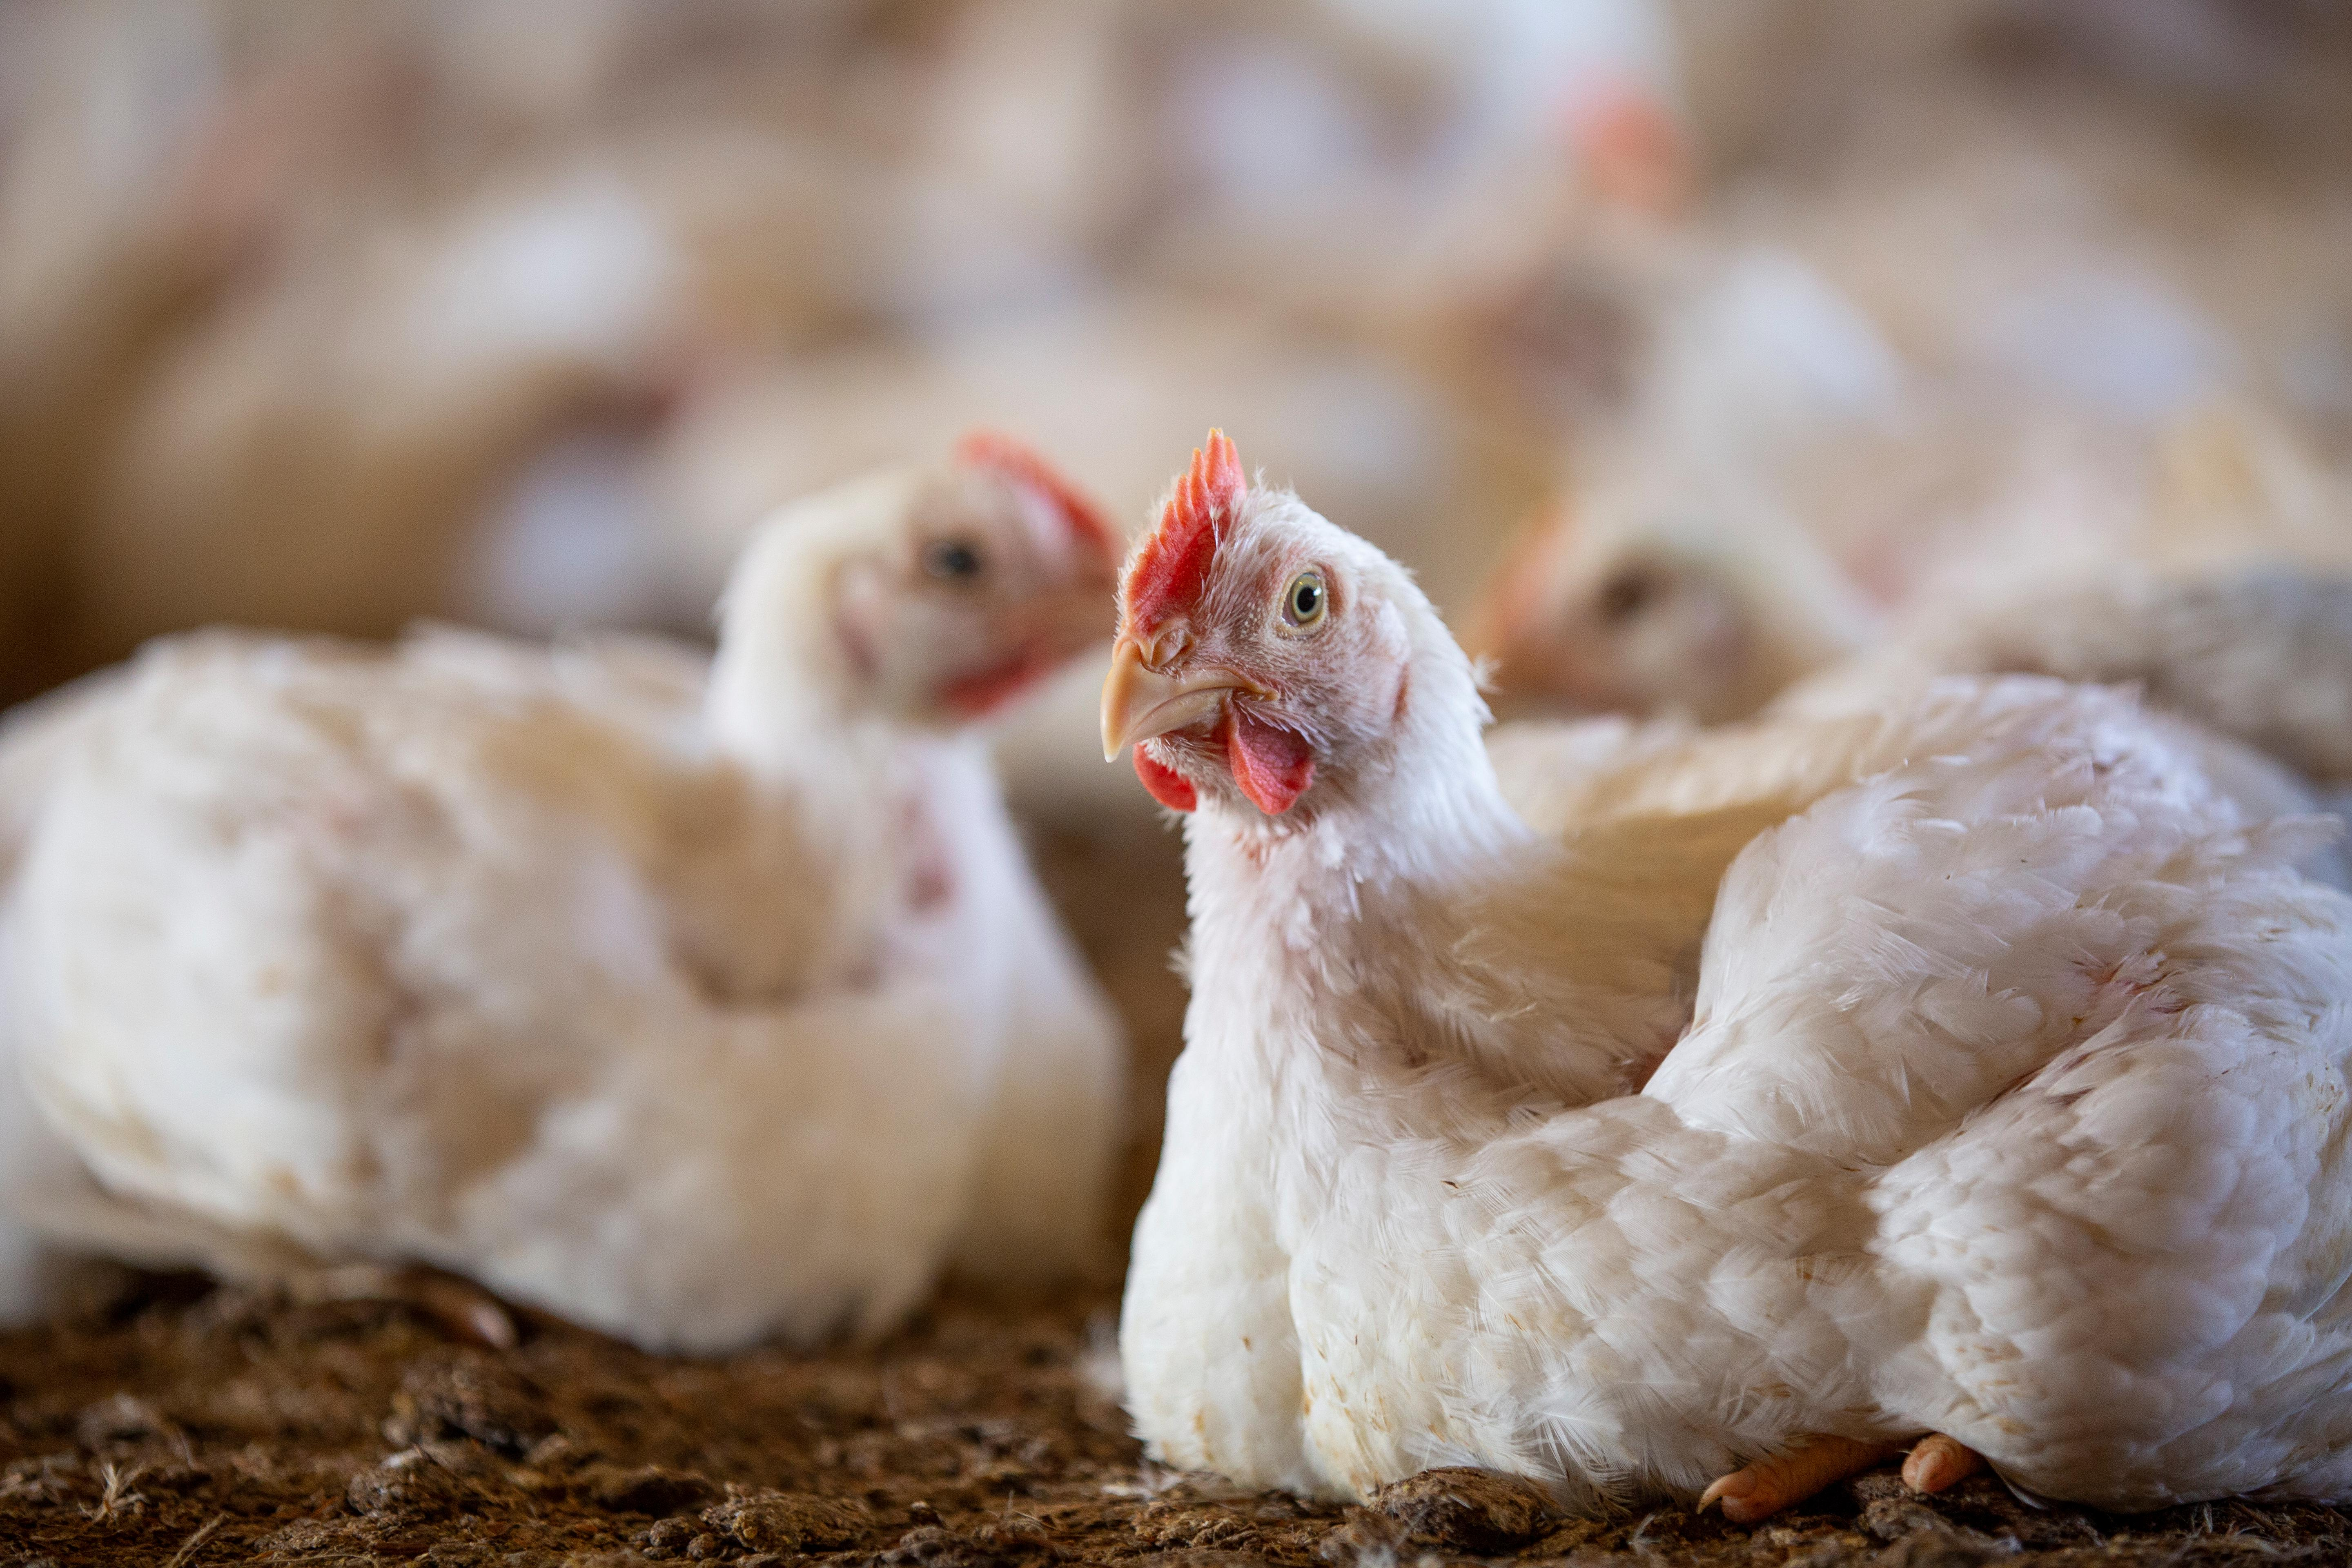 Two broiler chickens sit in broiler litter in focus, while a number of other chickens remain out of focus in the background.